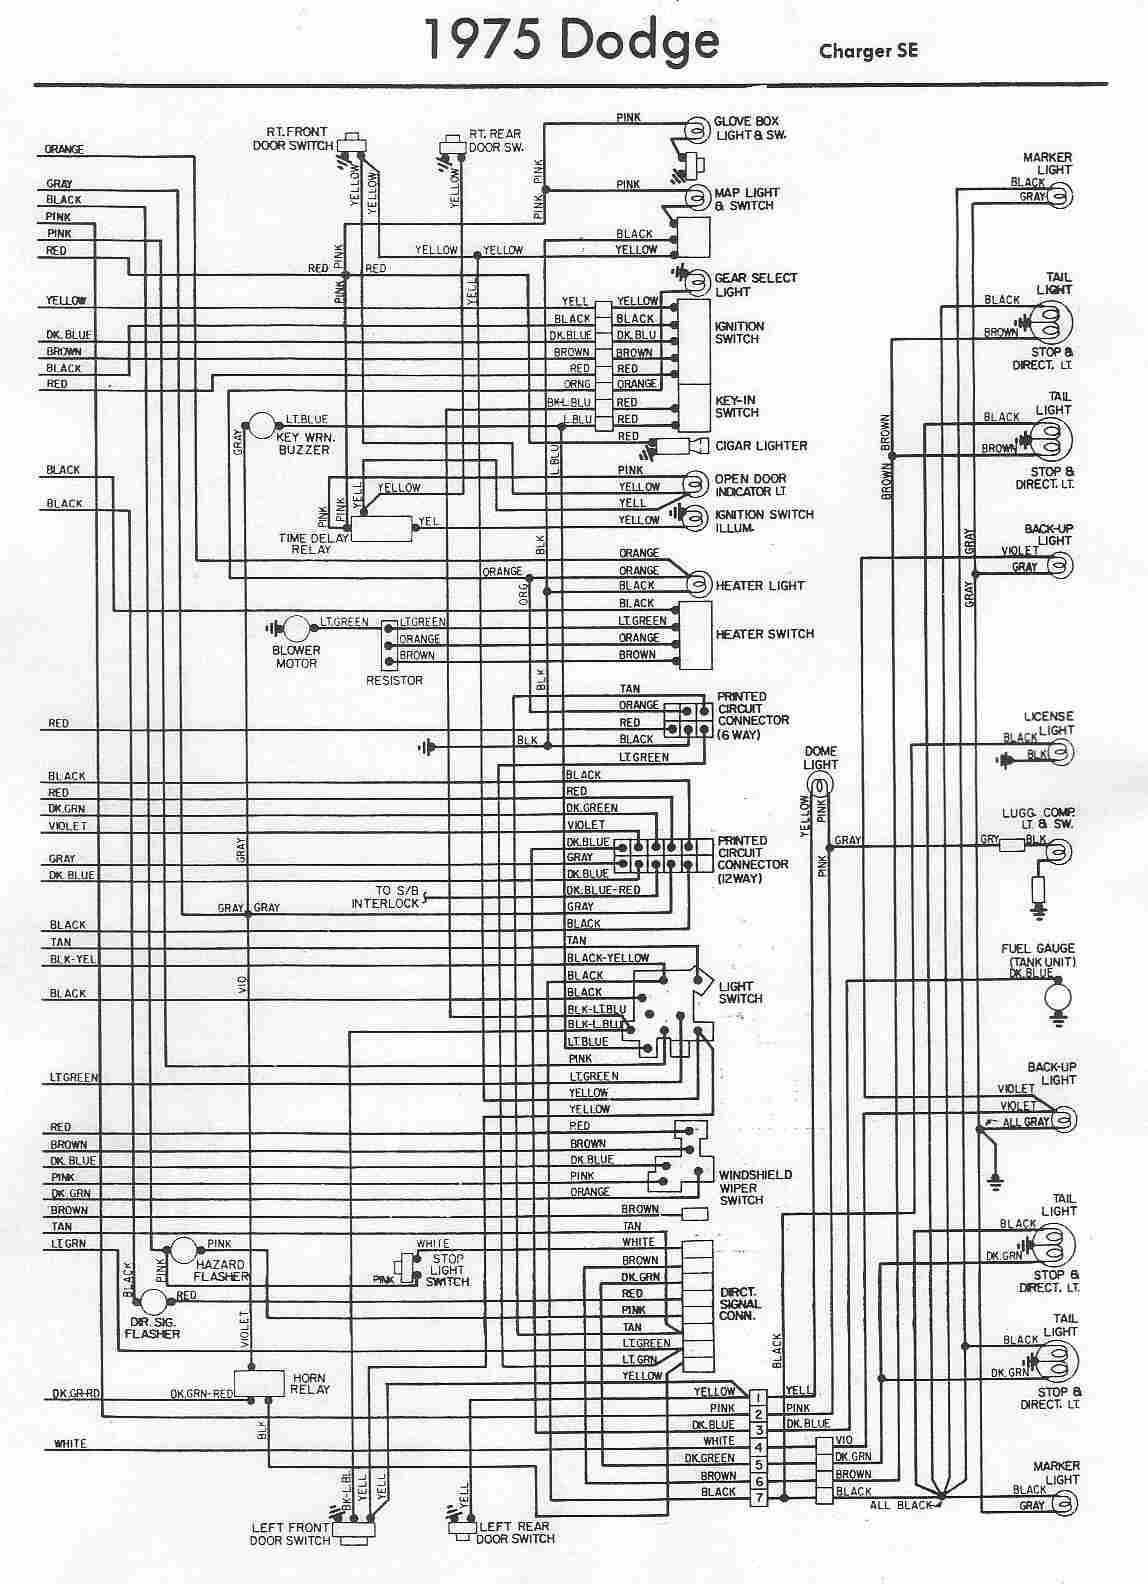 Dodge Car Manuals Wiring Diagrams Pdf Fault Codes 1989 Dakota Fuse Box Diagram Download